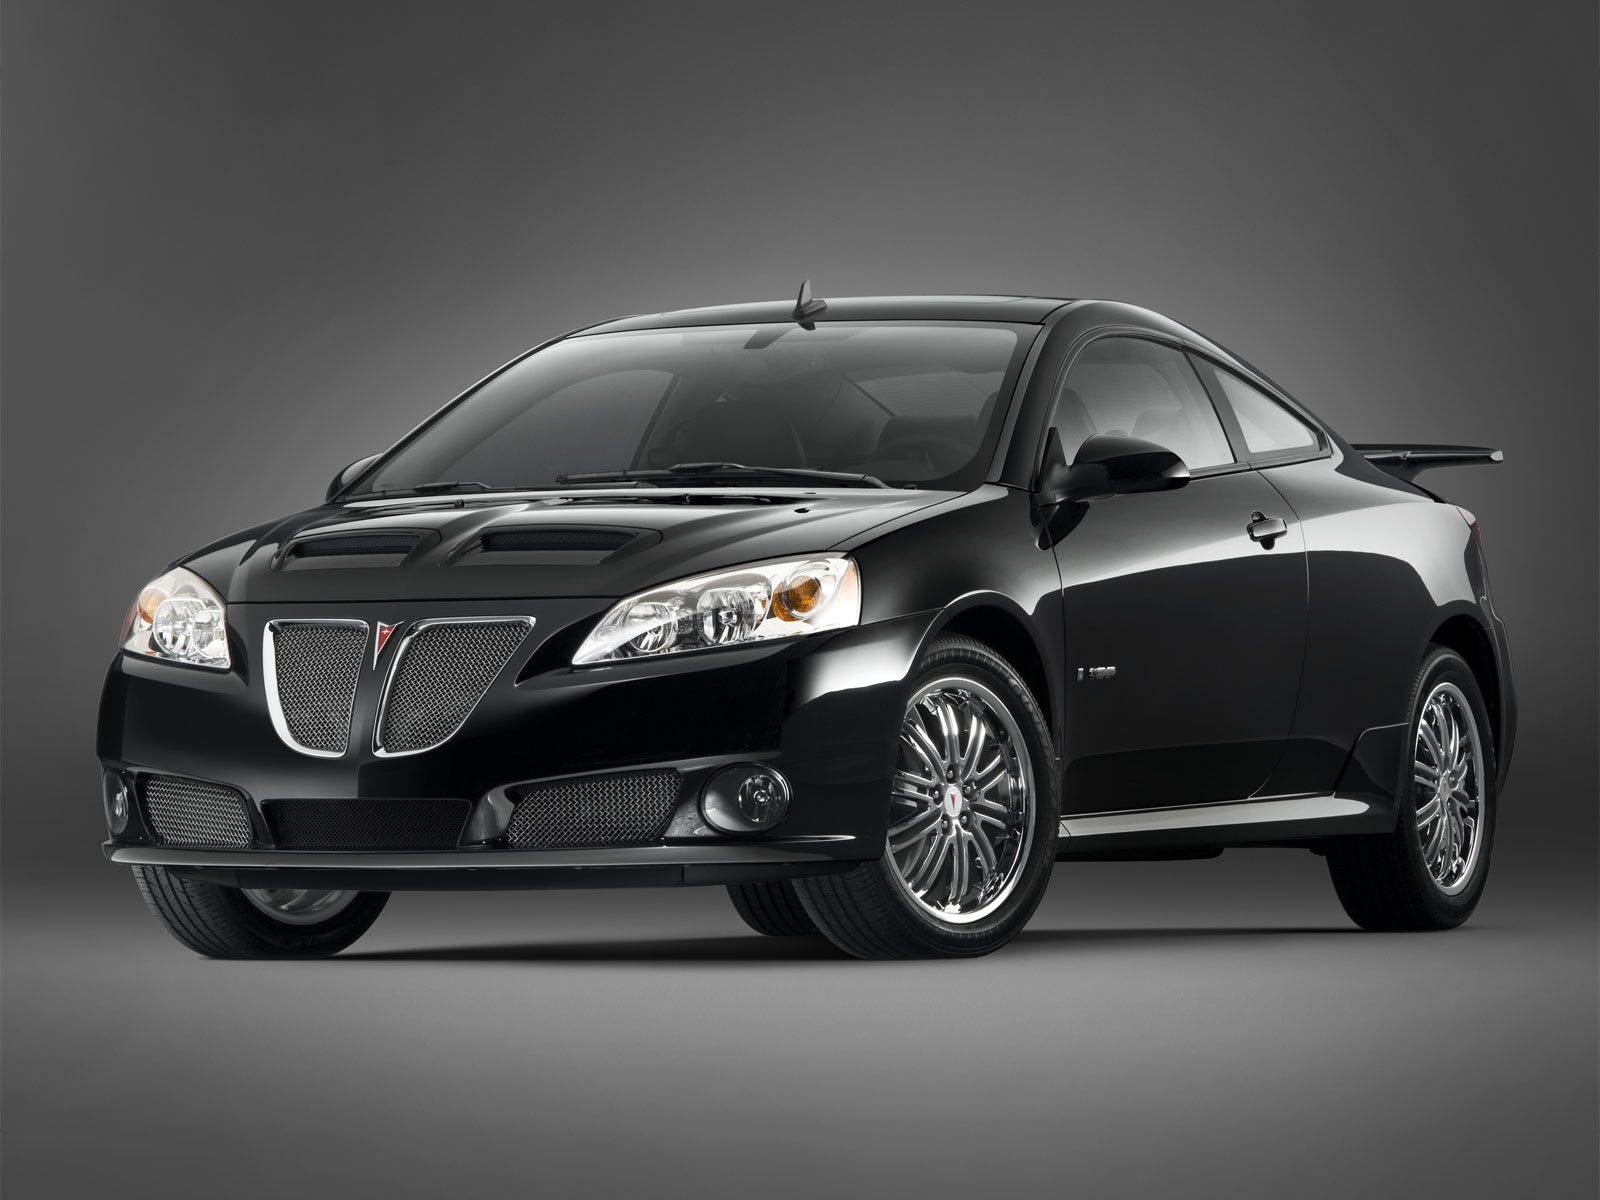 Super Duper Car Wallpapers: 2009 Pontiac G5 Coupe